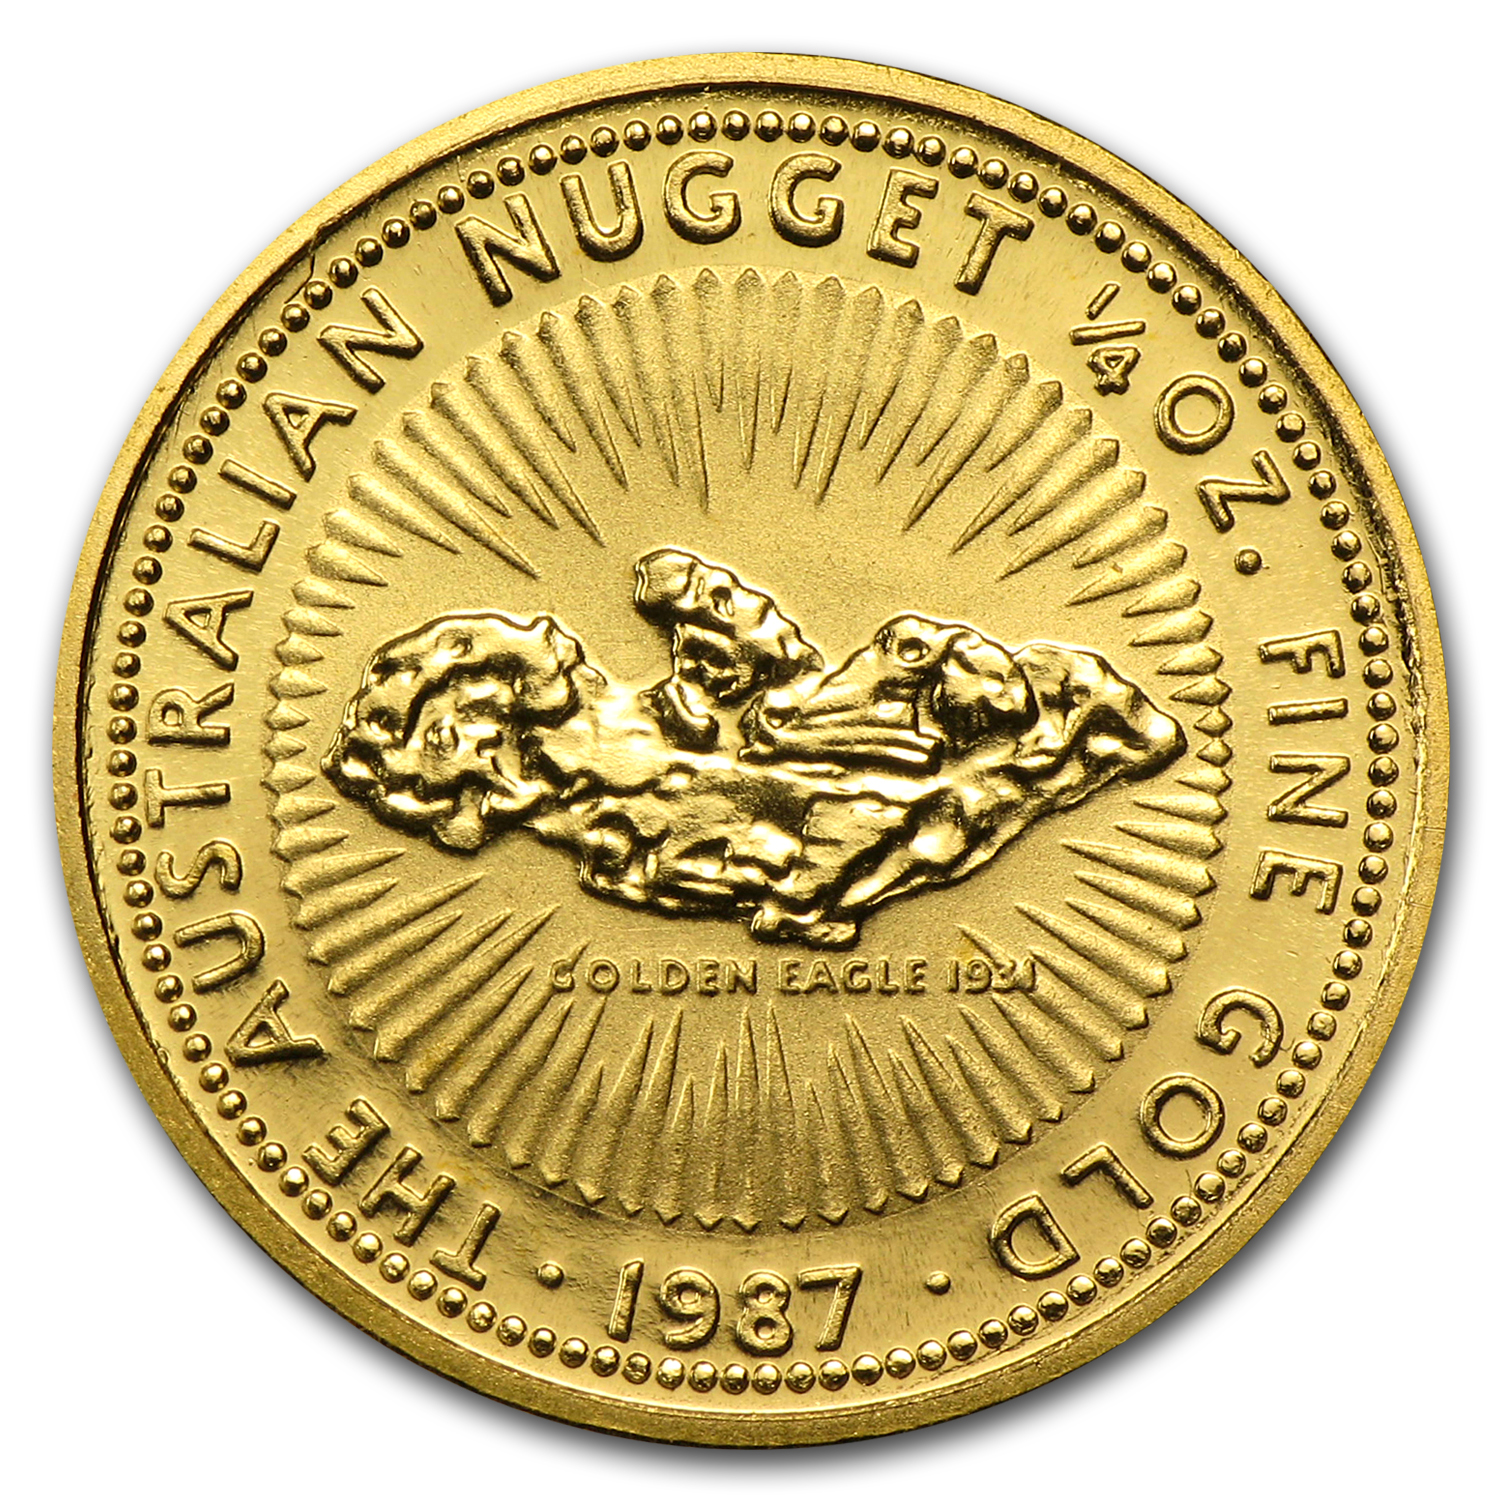 1987 1/4 oz Australian Gold Nugget